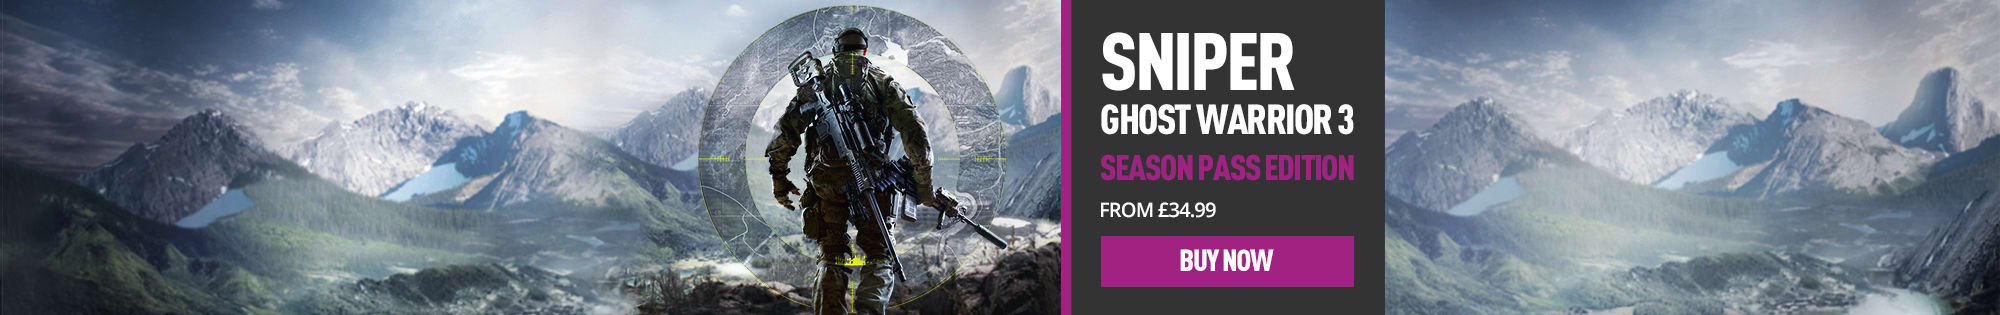 Sniper Ghost Warrior 3 for PlayStation 4, Xbox One and PC - Homepage Banner